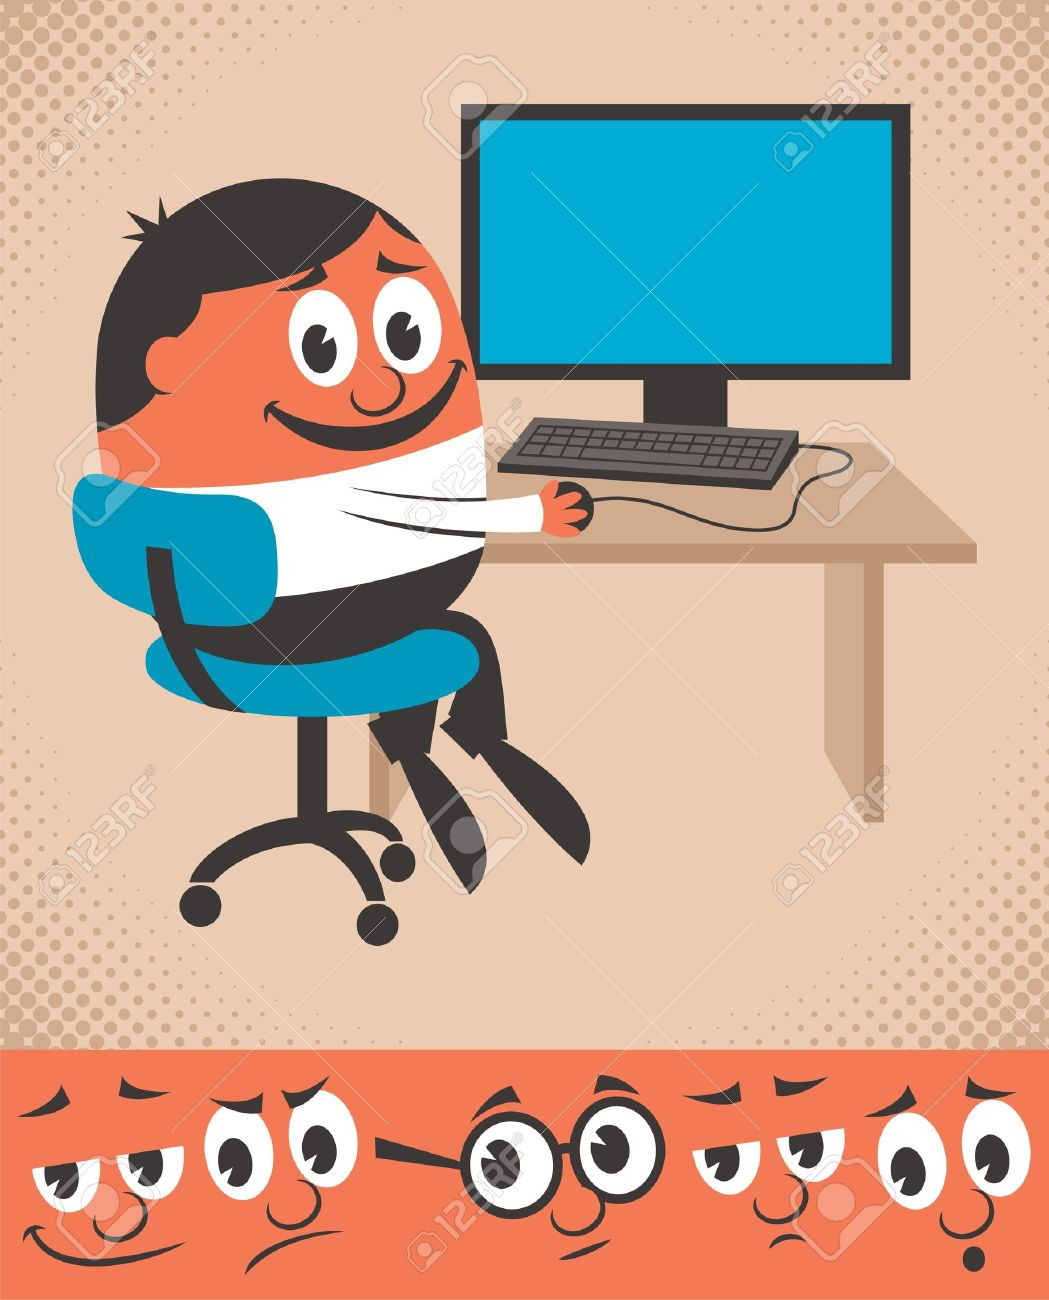 Cartoon character working on desktop computer. You can change his face expression, picking from the 5 additional faces below. The position of his nose is a constant. Use it as guide for the next face. Stock Vector - 18009893